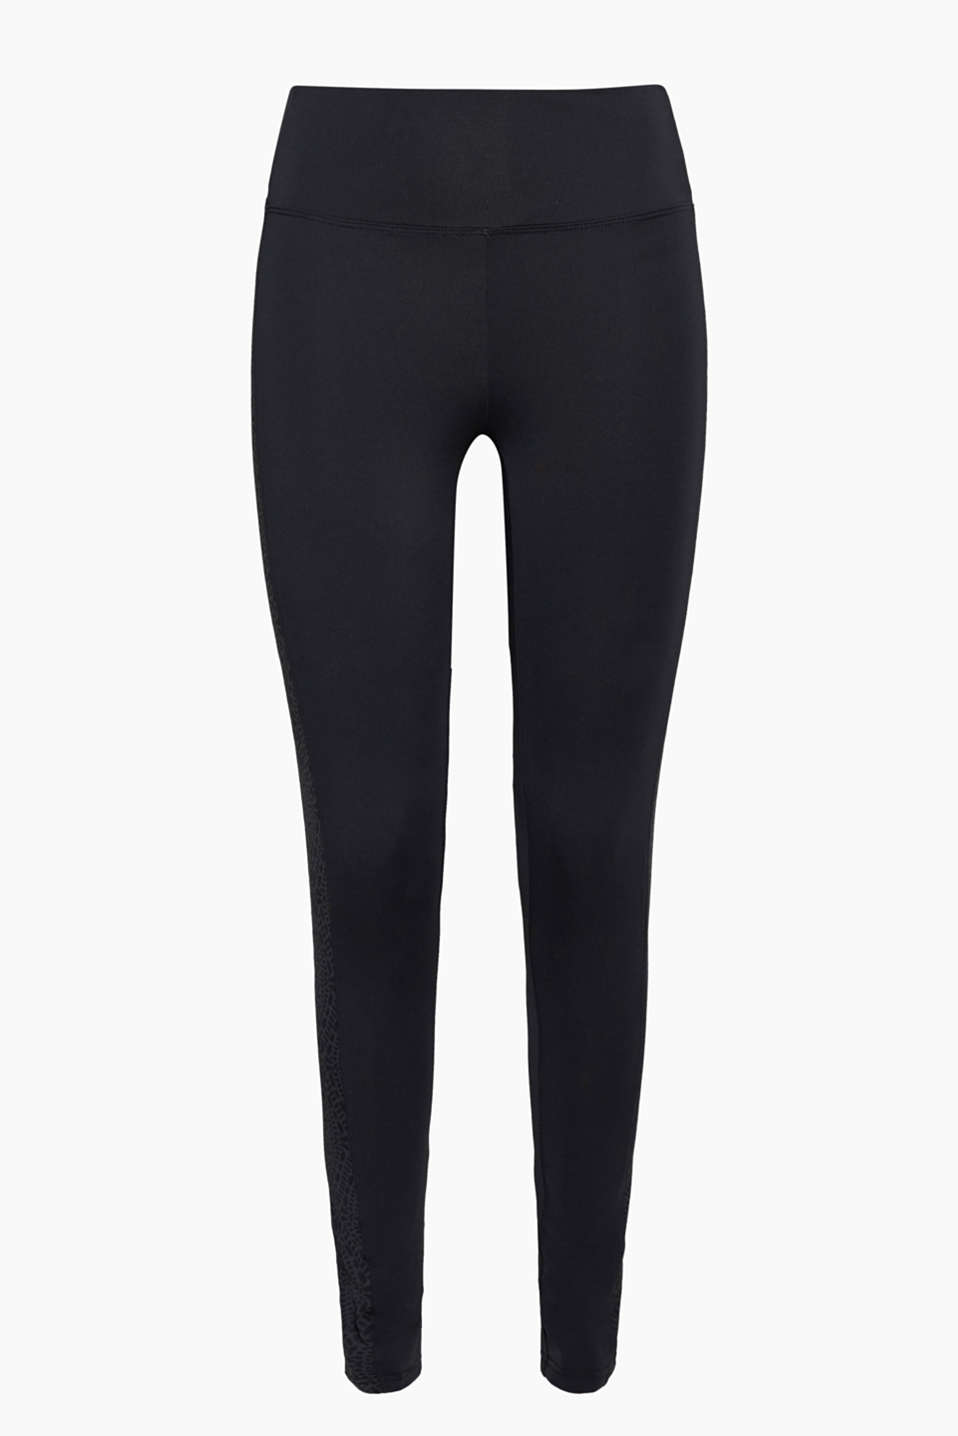 Fashion and practicality: These E-DRY active leggings are sure to turn heads with decorative trims at the sides!